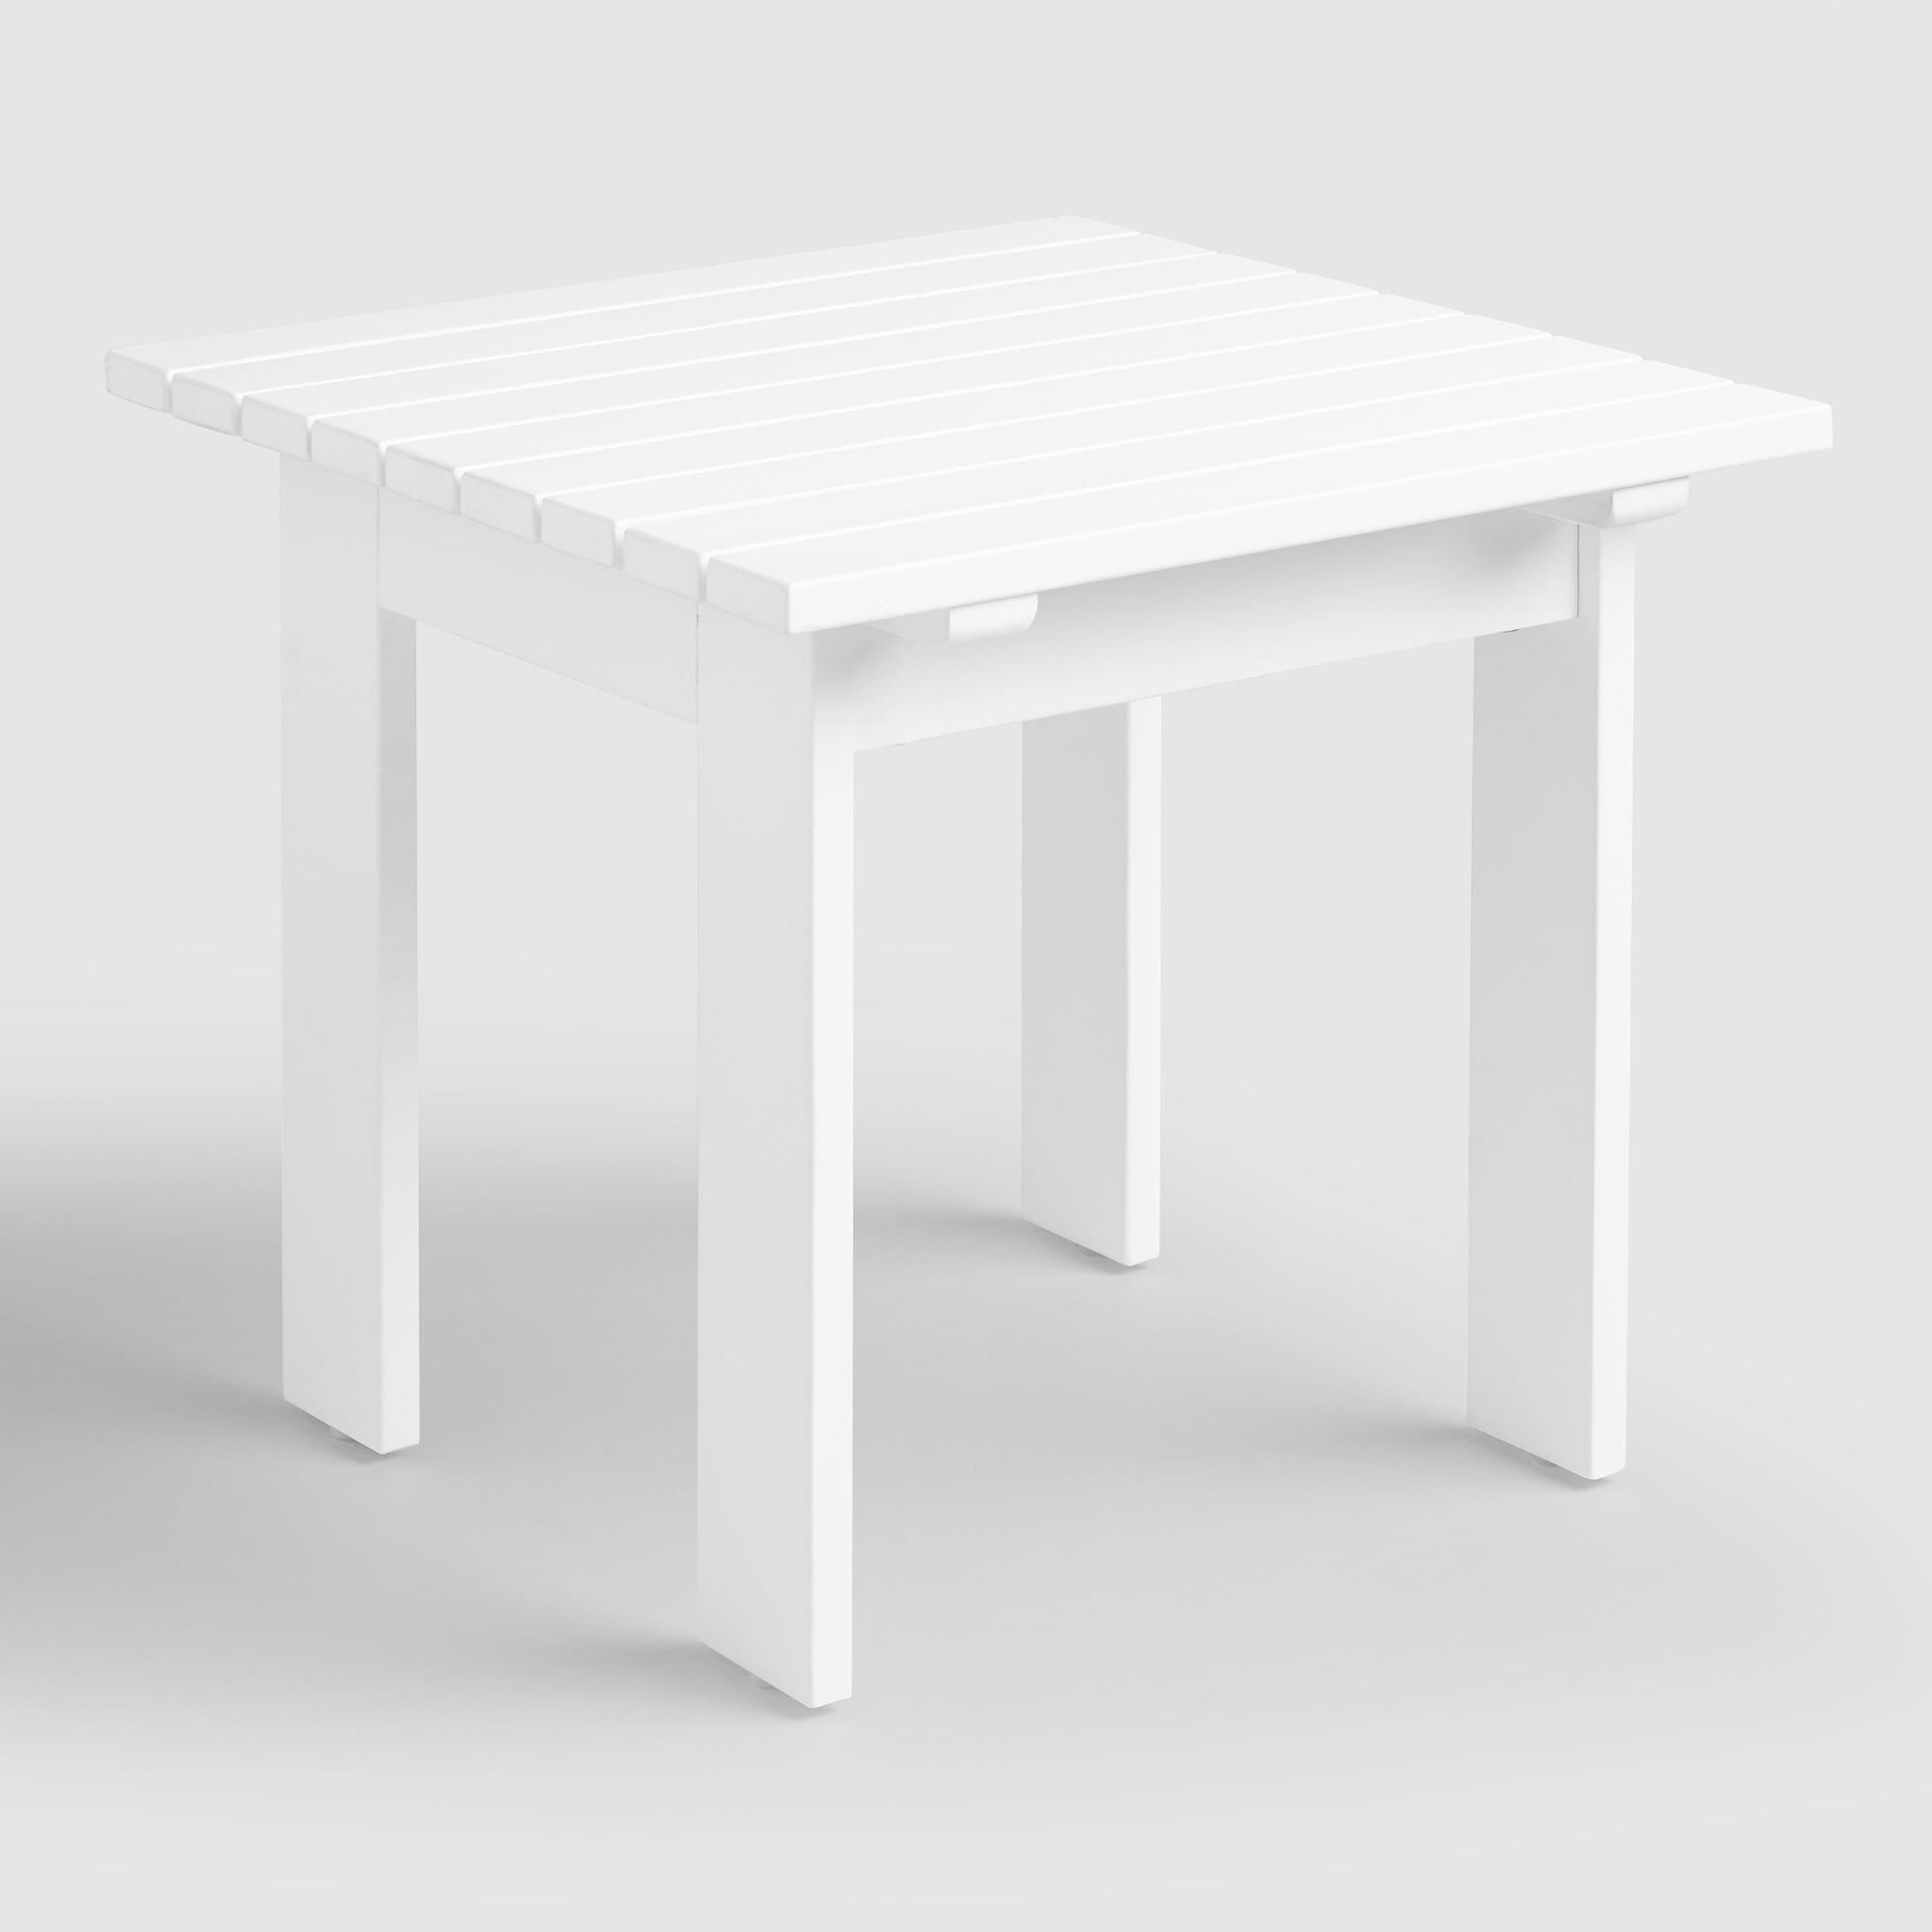 Round White Marble Milan Accent Table By World Market: Antique White Adirondack Side Table